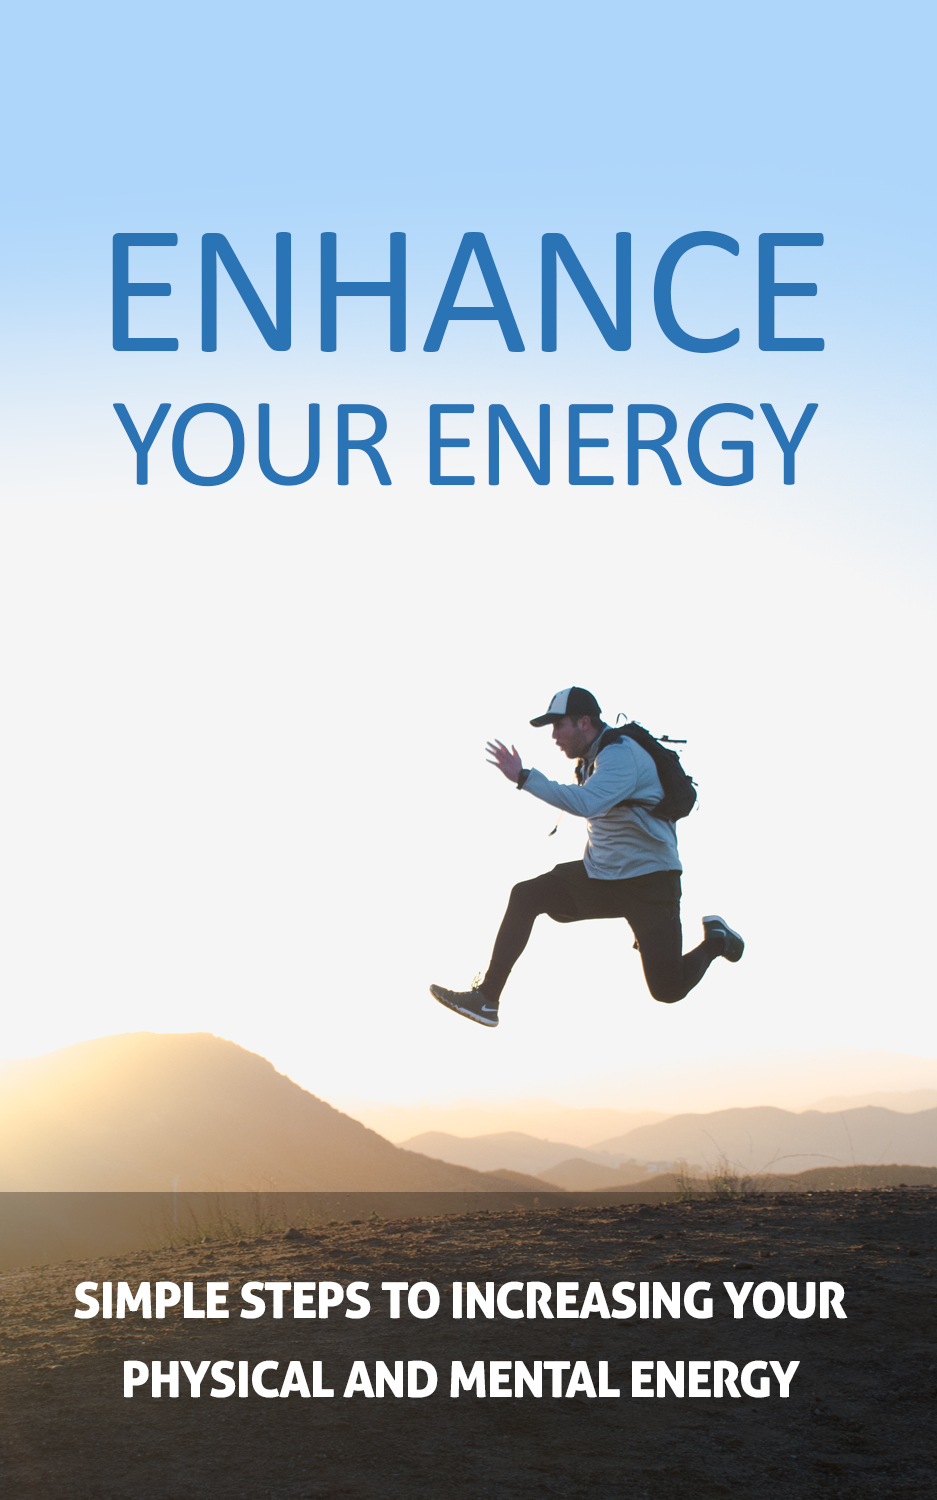 Enhance Your Energy (Simple Steps To Increasing Your Physical And Mental Energy) Ebook's Ebook Image